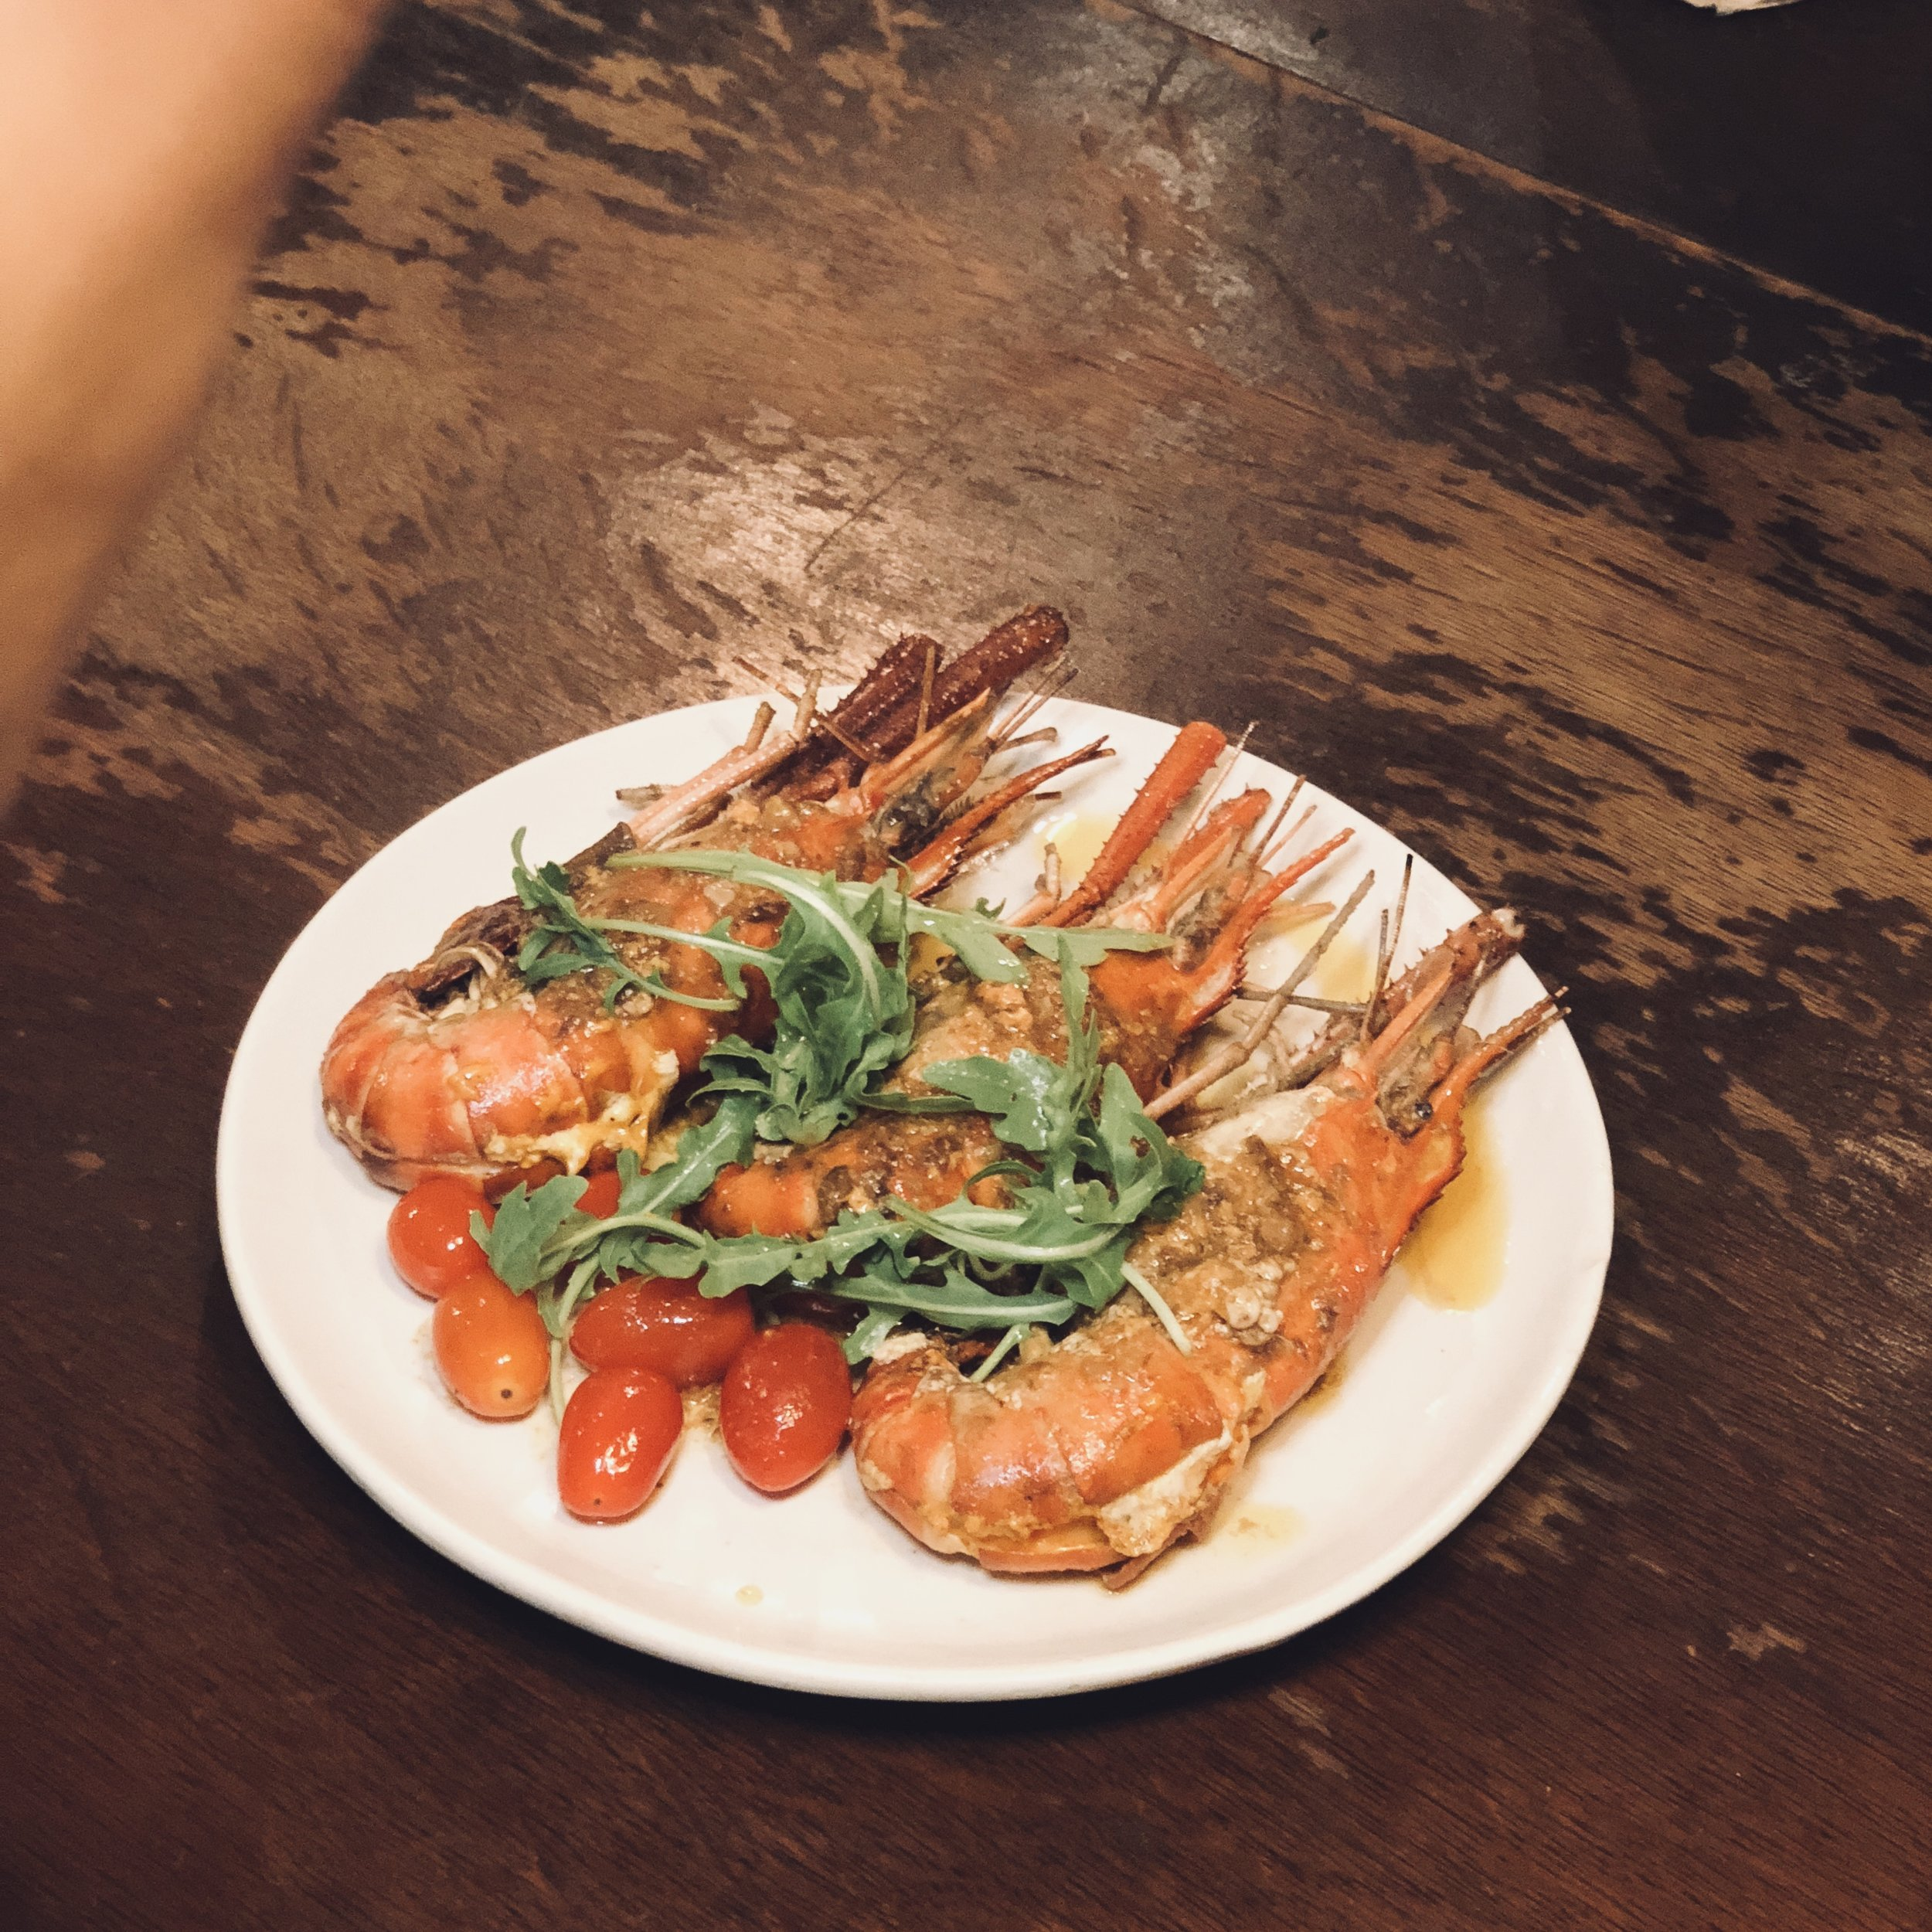 River Prawns with Anchovy Butter- another highlight.